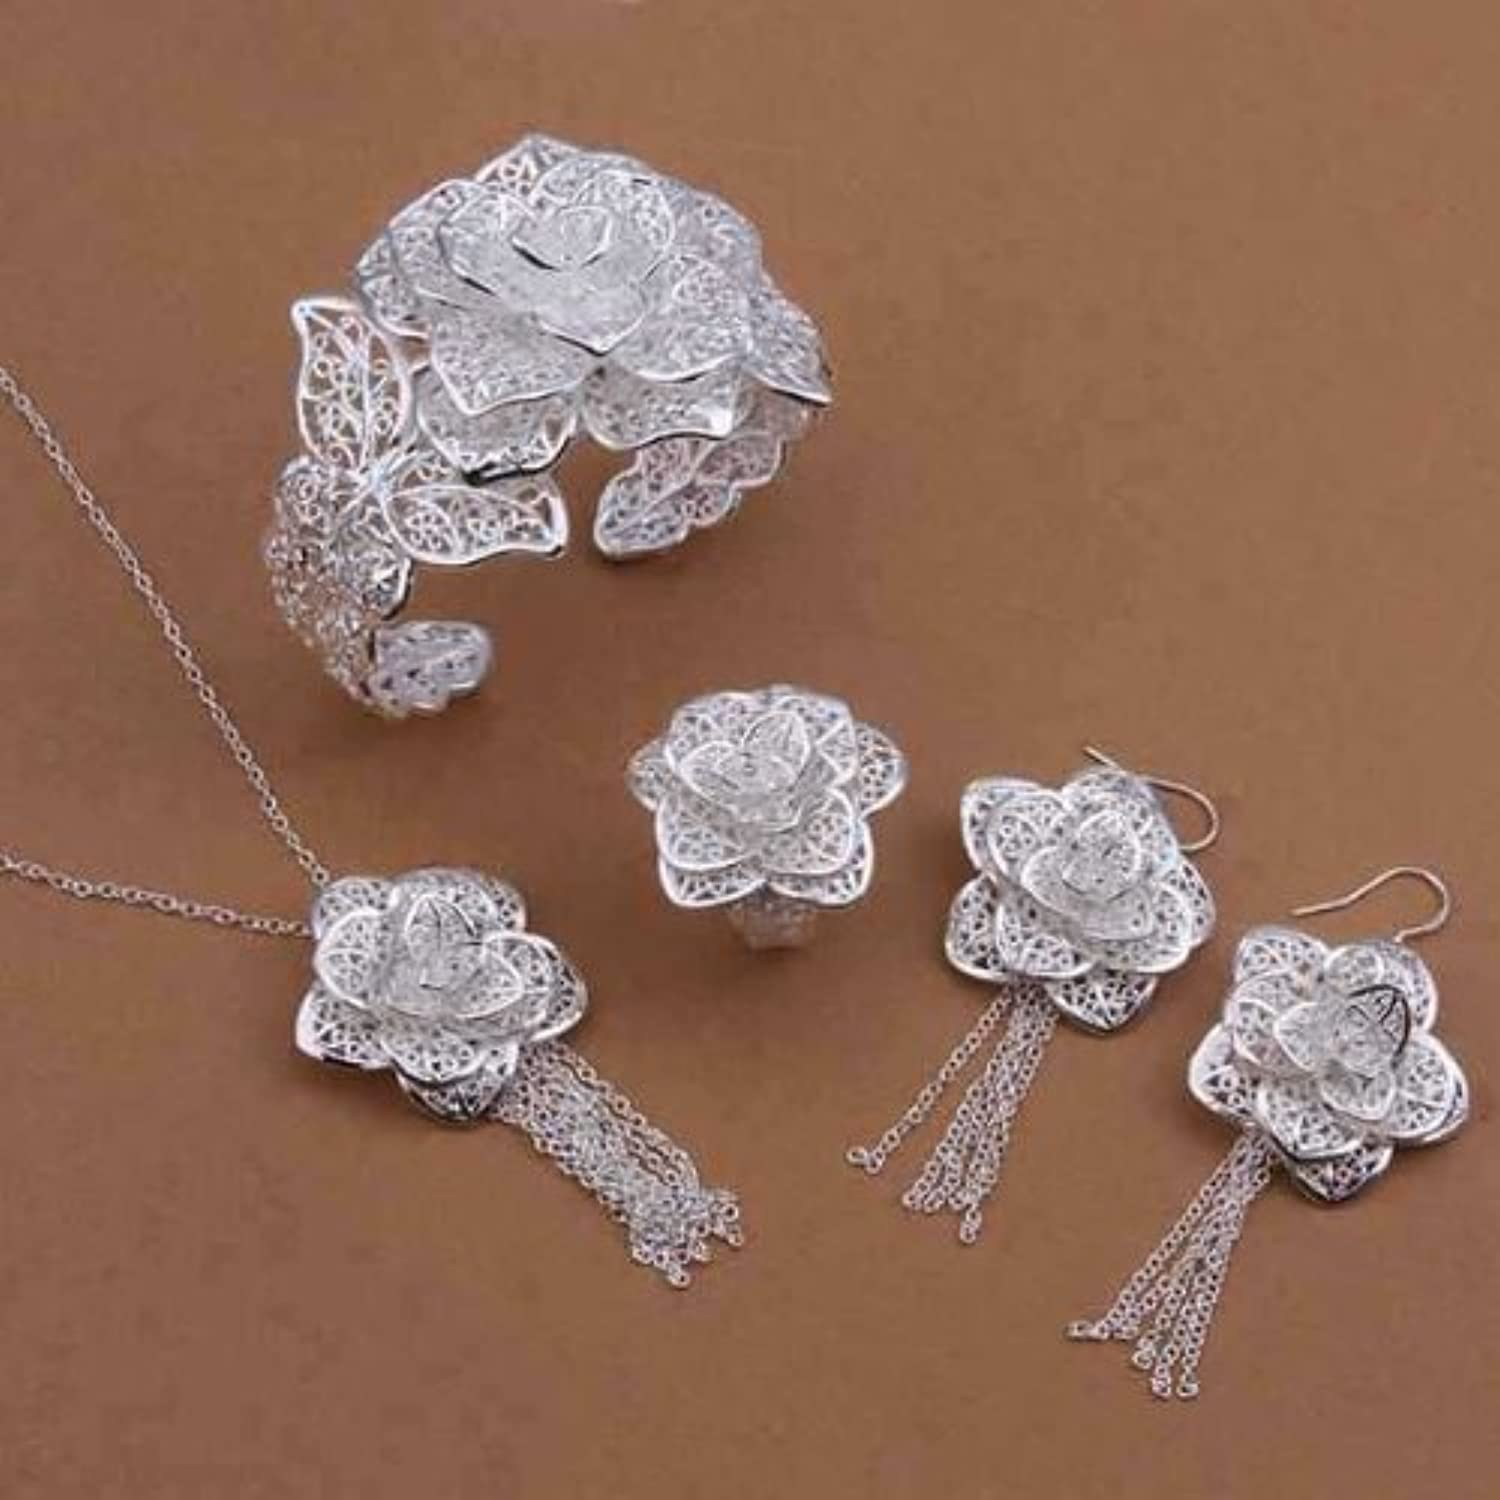 KDesign silver 925 , Flower Pendant Bracelet,Necklace,Ring And Earrings Silver Plated Bridal Sets S444